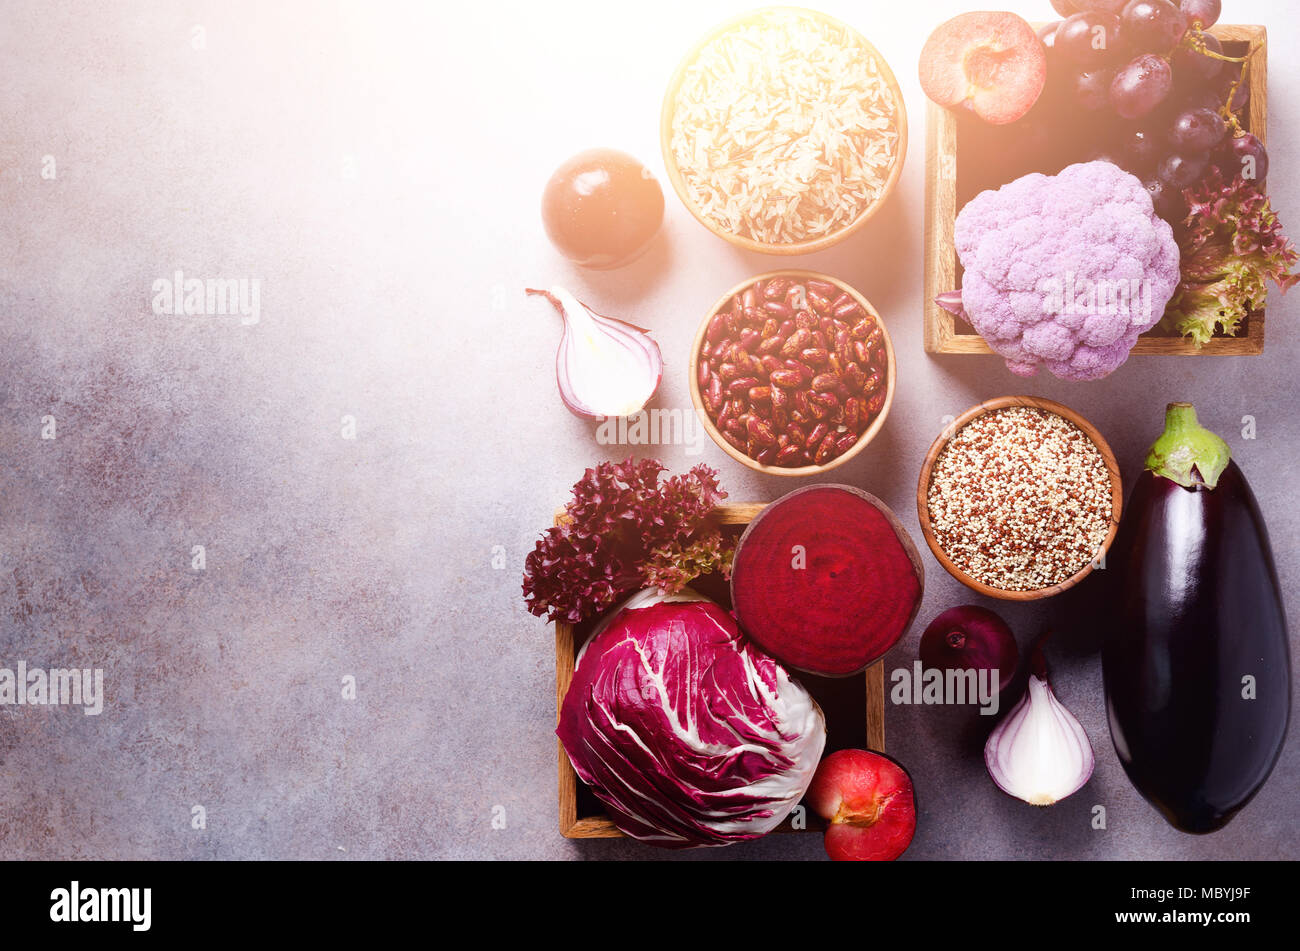 Violet Eggplant, Beets, Cauliflower, Purple Beans, Plums, Onion, Cabbage,  Grape, Quinoa, Rice. Ingredients For Cooking, Copy Space, Top View, Flat Lay